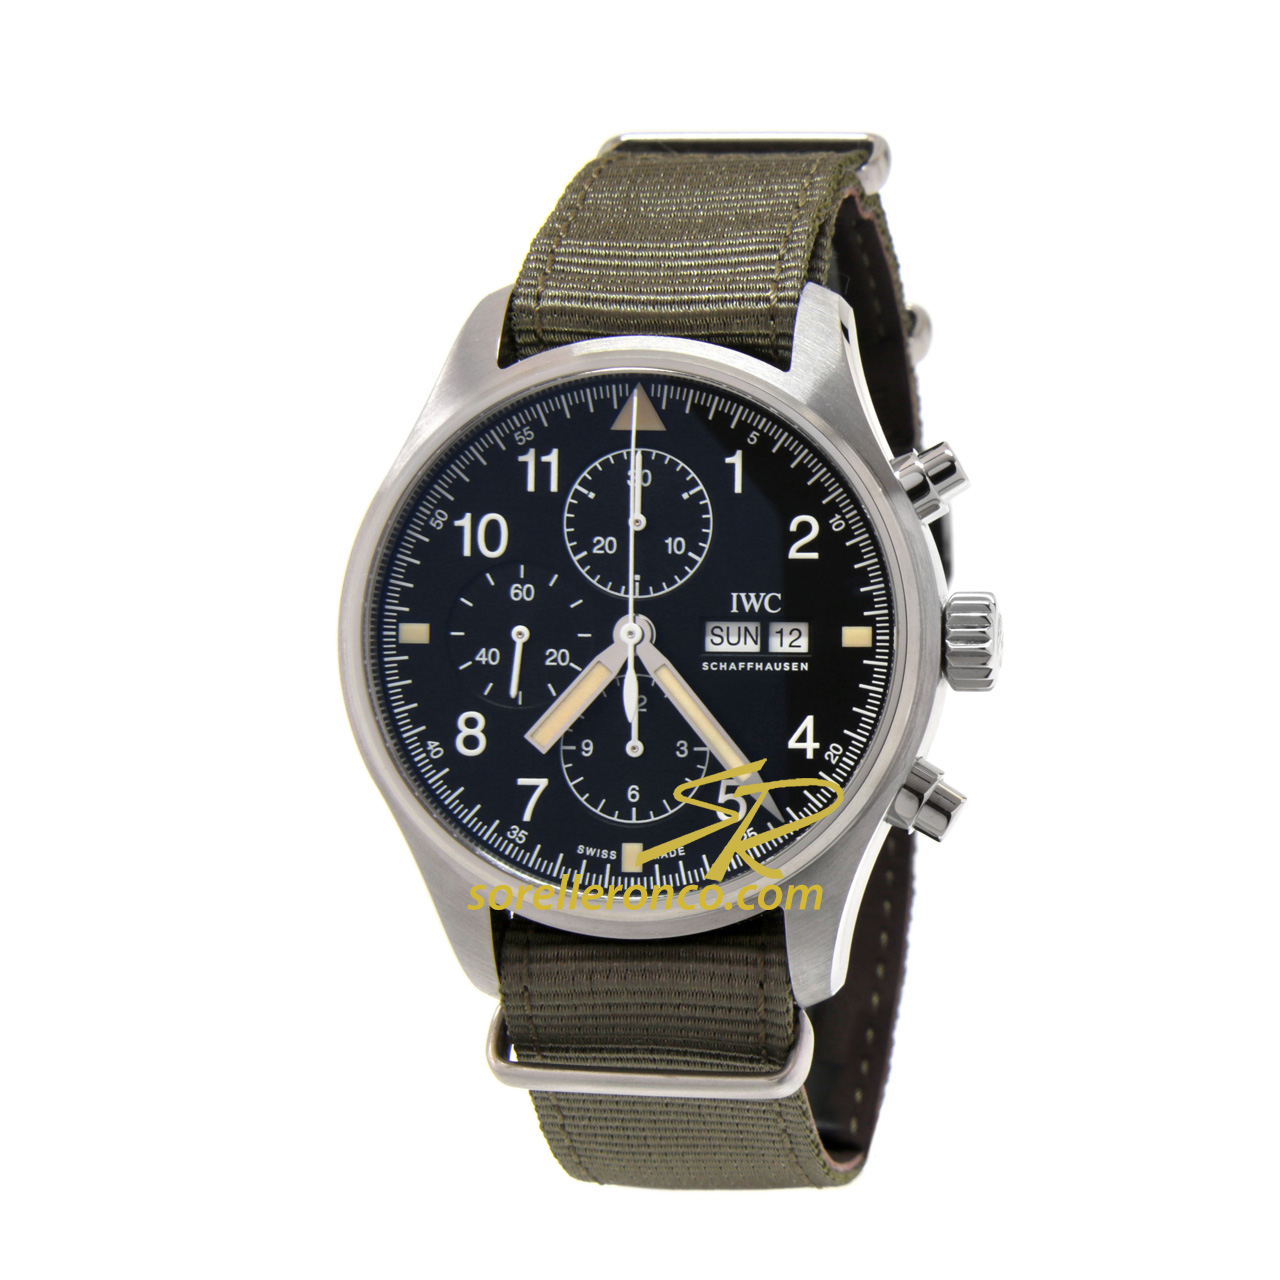 Pilot's Watch Chrono Re-Edition Hystoric